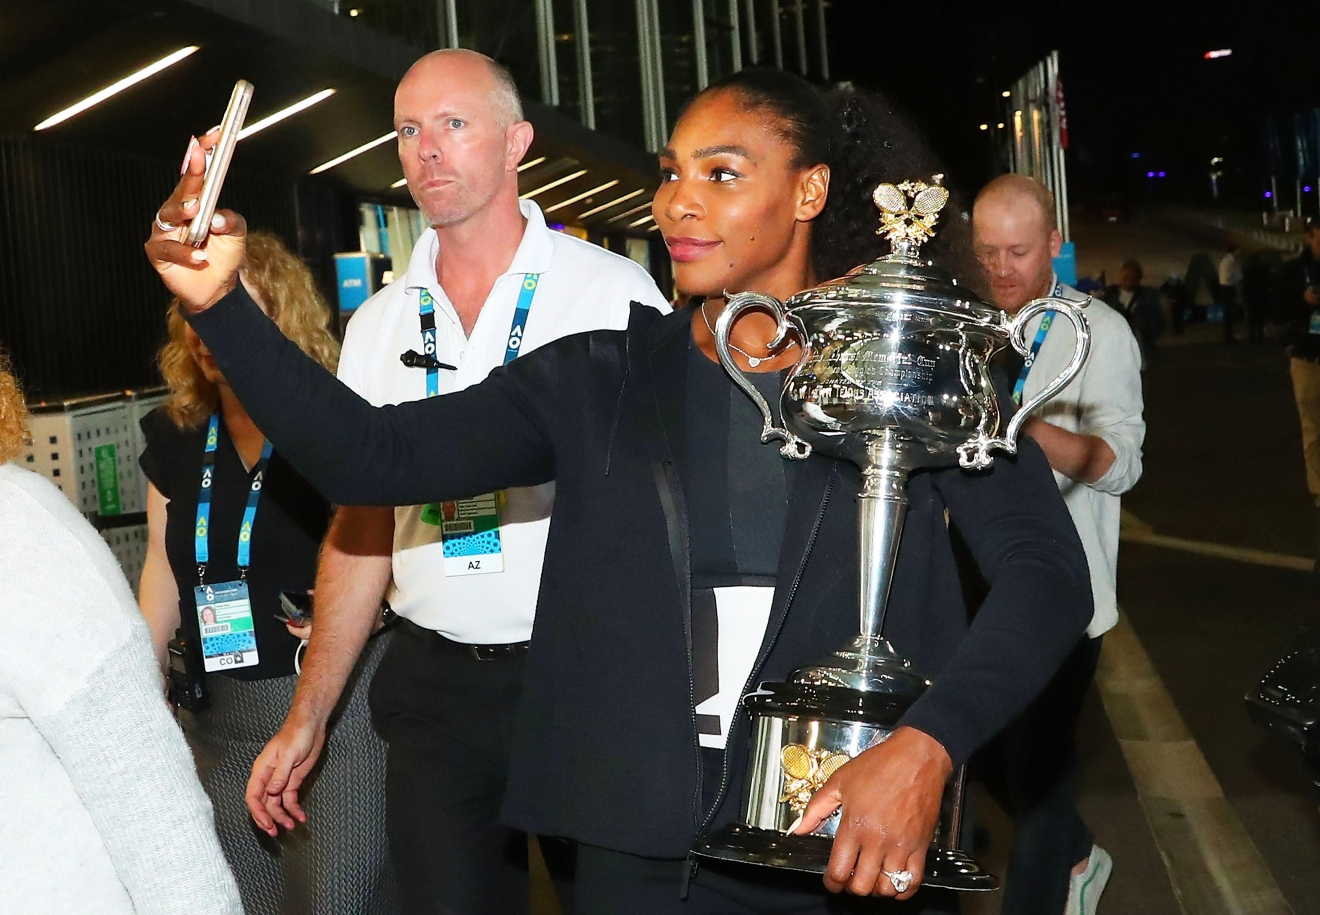 MELBOURNE, AUSTRALIA - JANUARY 28:  Serena Williams of the United States poses for a selfie photo with the Daphne Akhurst Memorial Cup after winning the 2017 Women's Singles Australian Open Championship at Melbourne Park on January 28, 2017 in Melbourne, Australia.  (Photo by Scott Barbour/Getty Images)